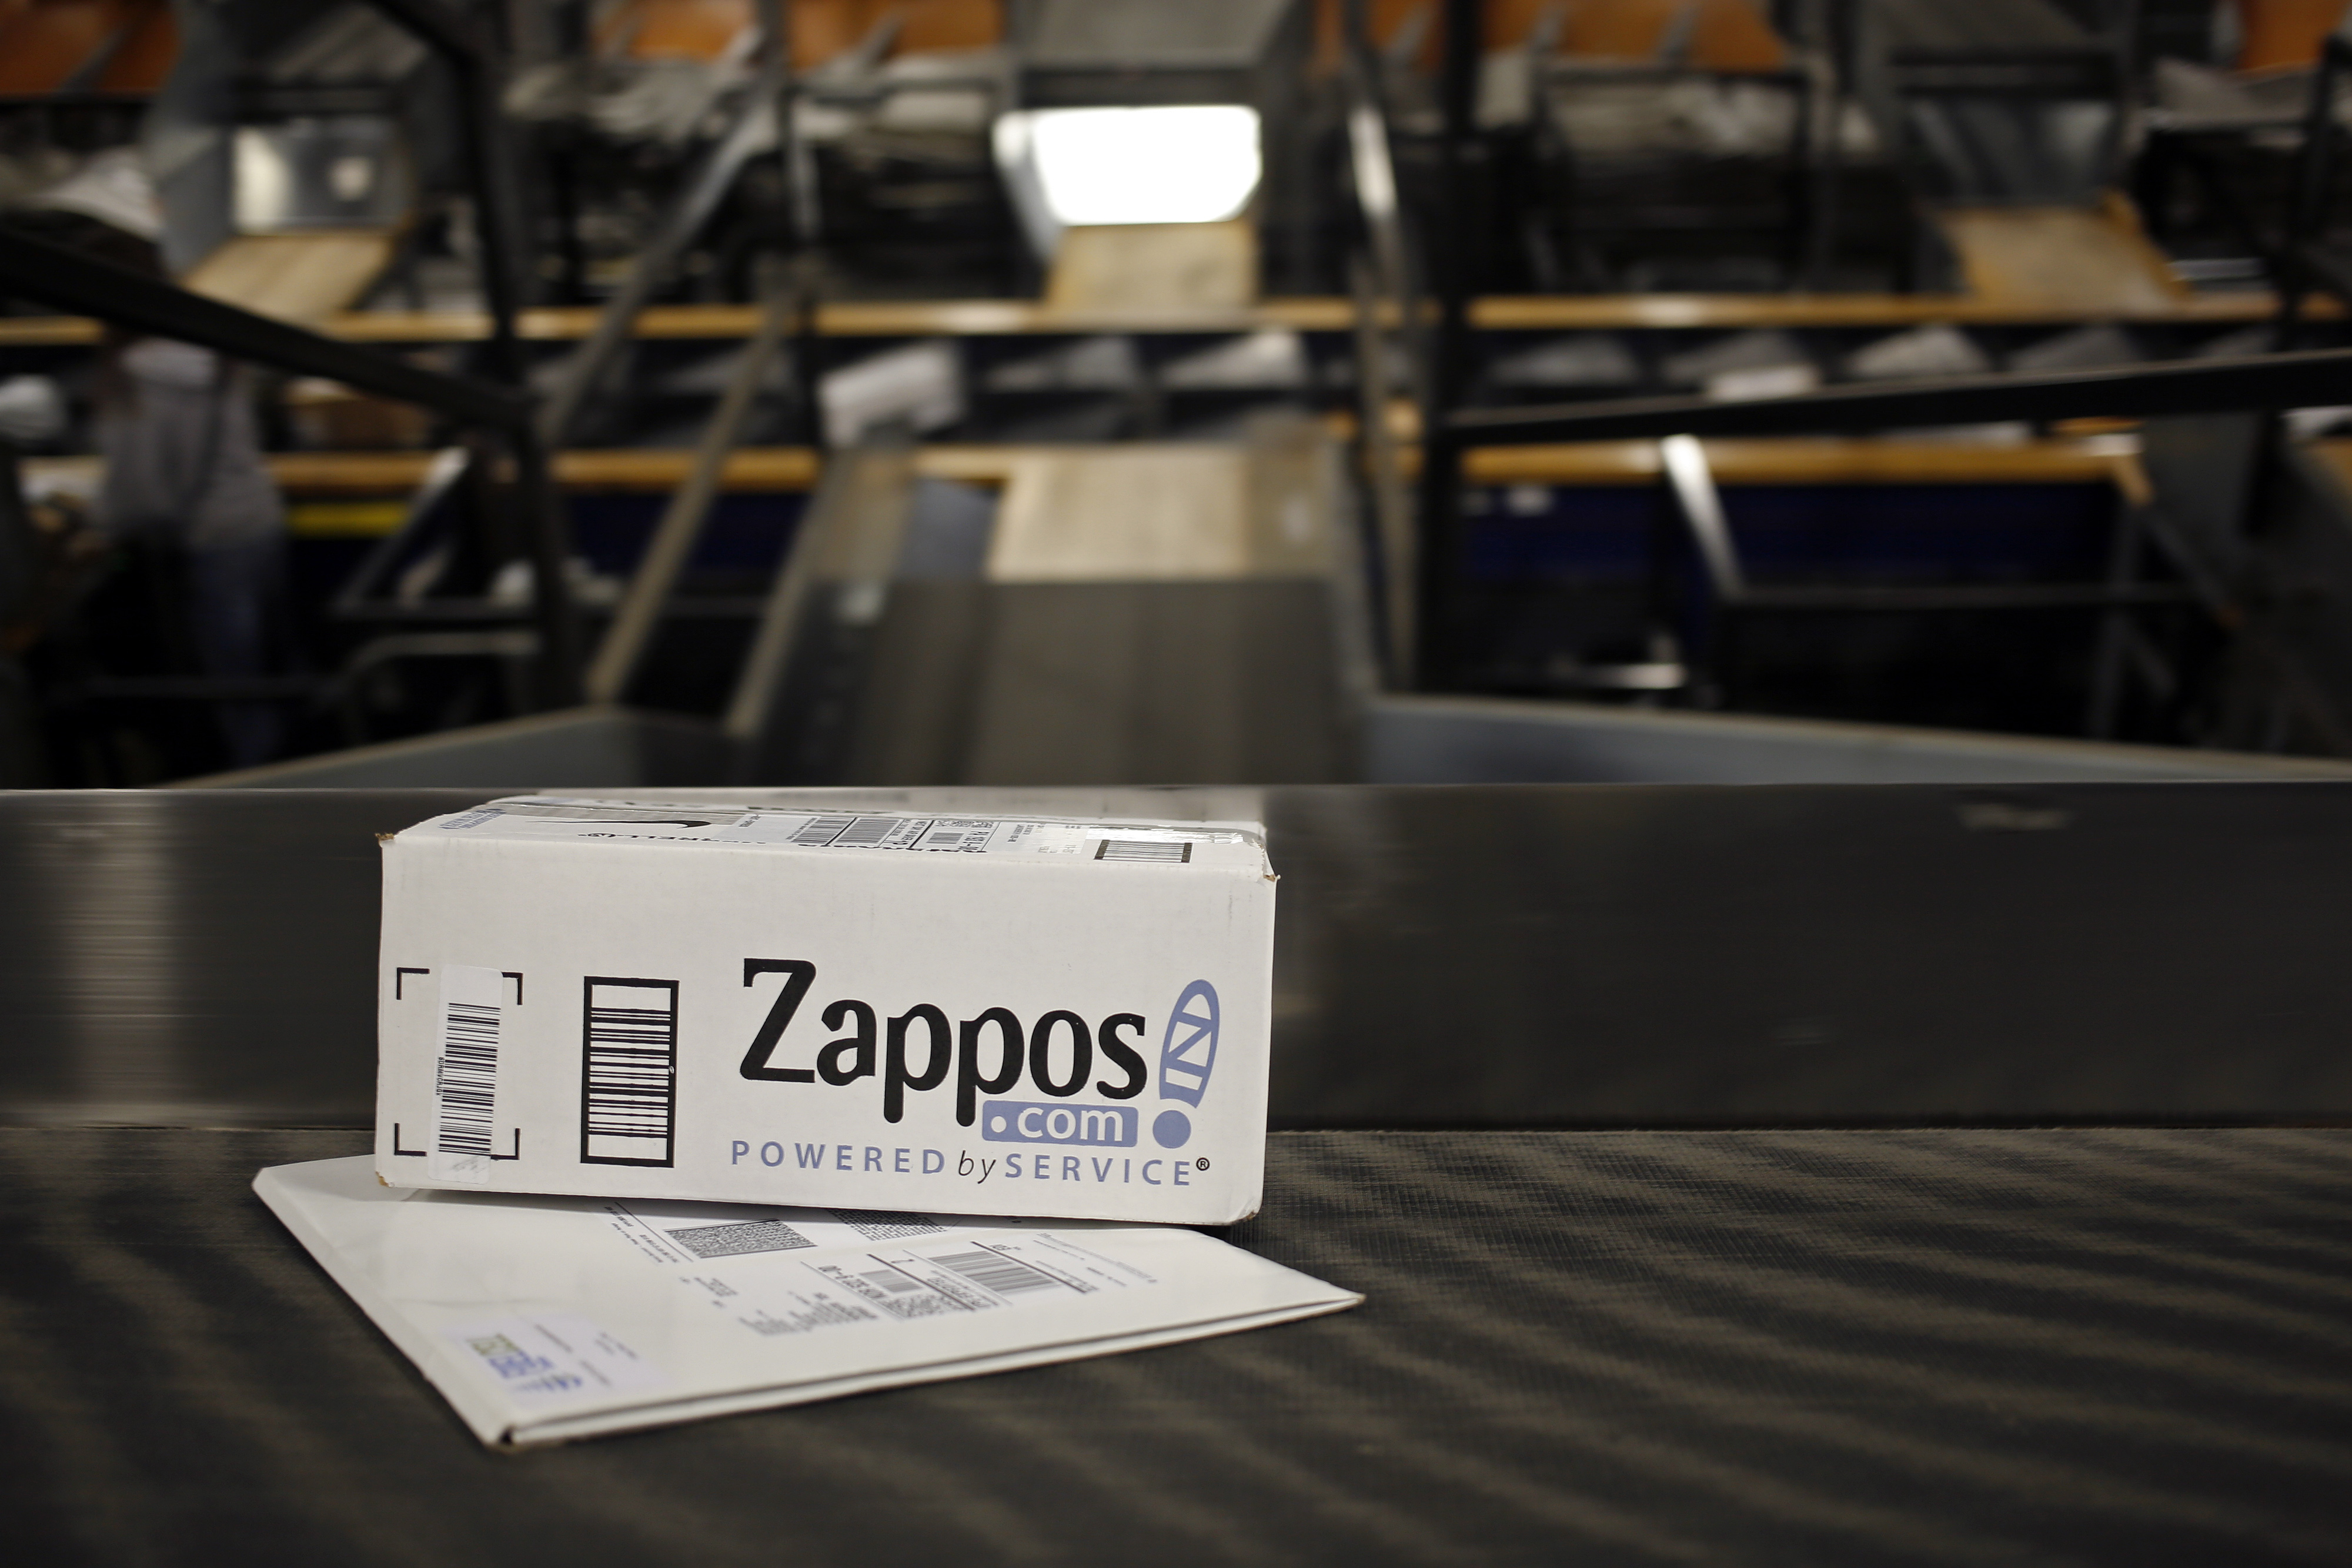 A package from Zappos.com moves down a conveyor belt during the afternoon sort at the United Parcel Service Inc. (UPS) Worldport facility in Louisville, Kentucky, U.S., on Tuesday, April 21, 2015.